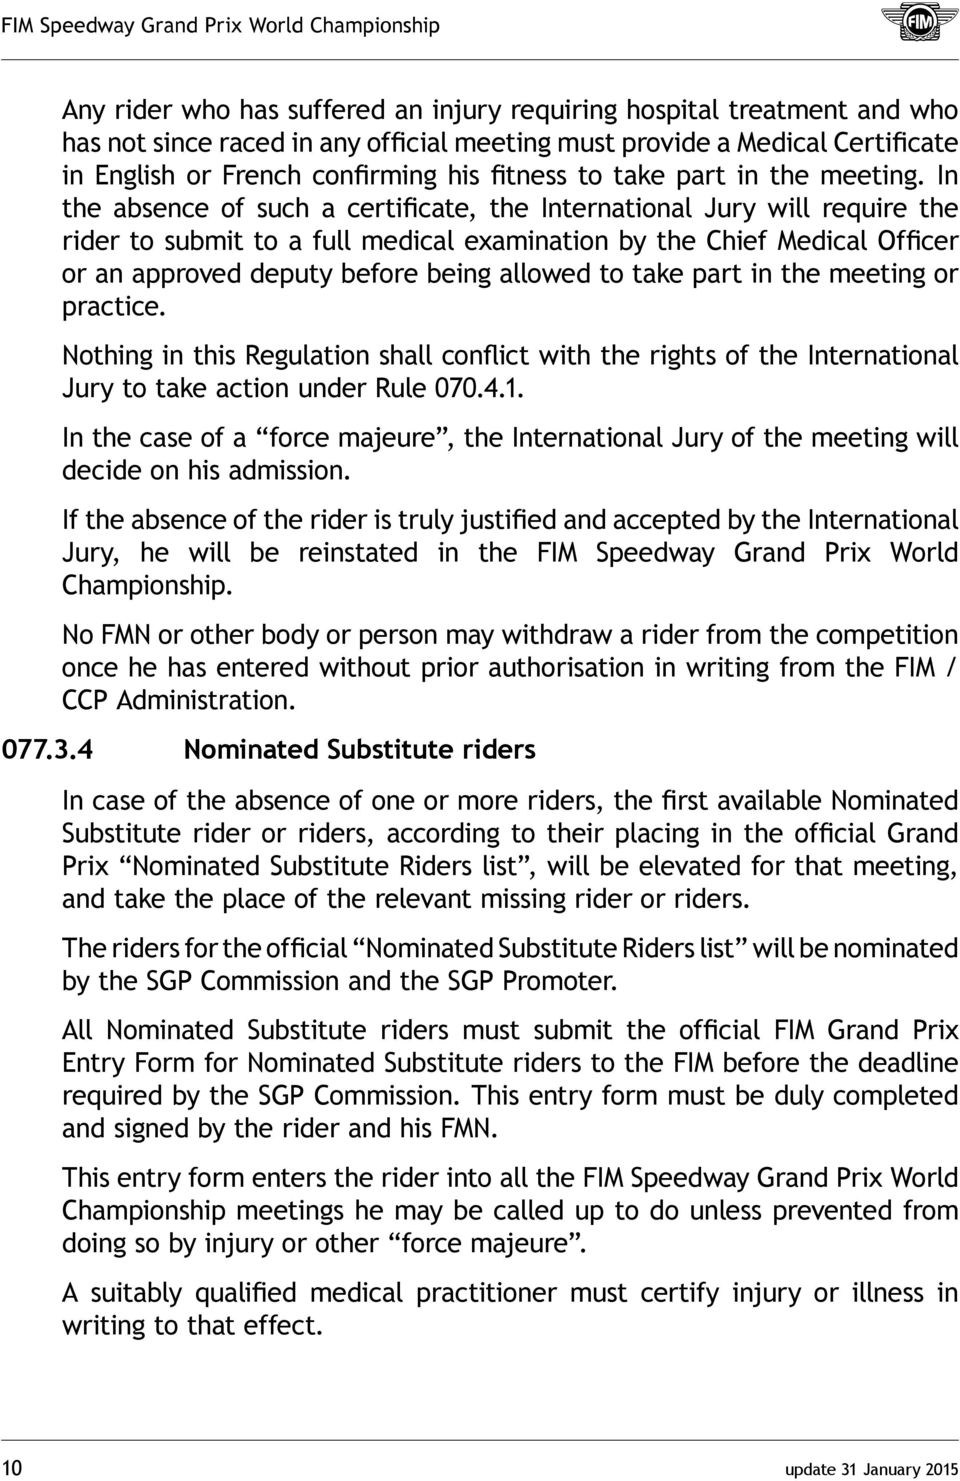 In the absence of such a certificate, the International Jury will require the rider to submit to a full medical examination by the Chief Medical Officer or an approved deputy before being allowed to